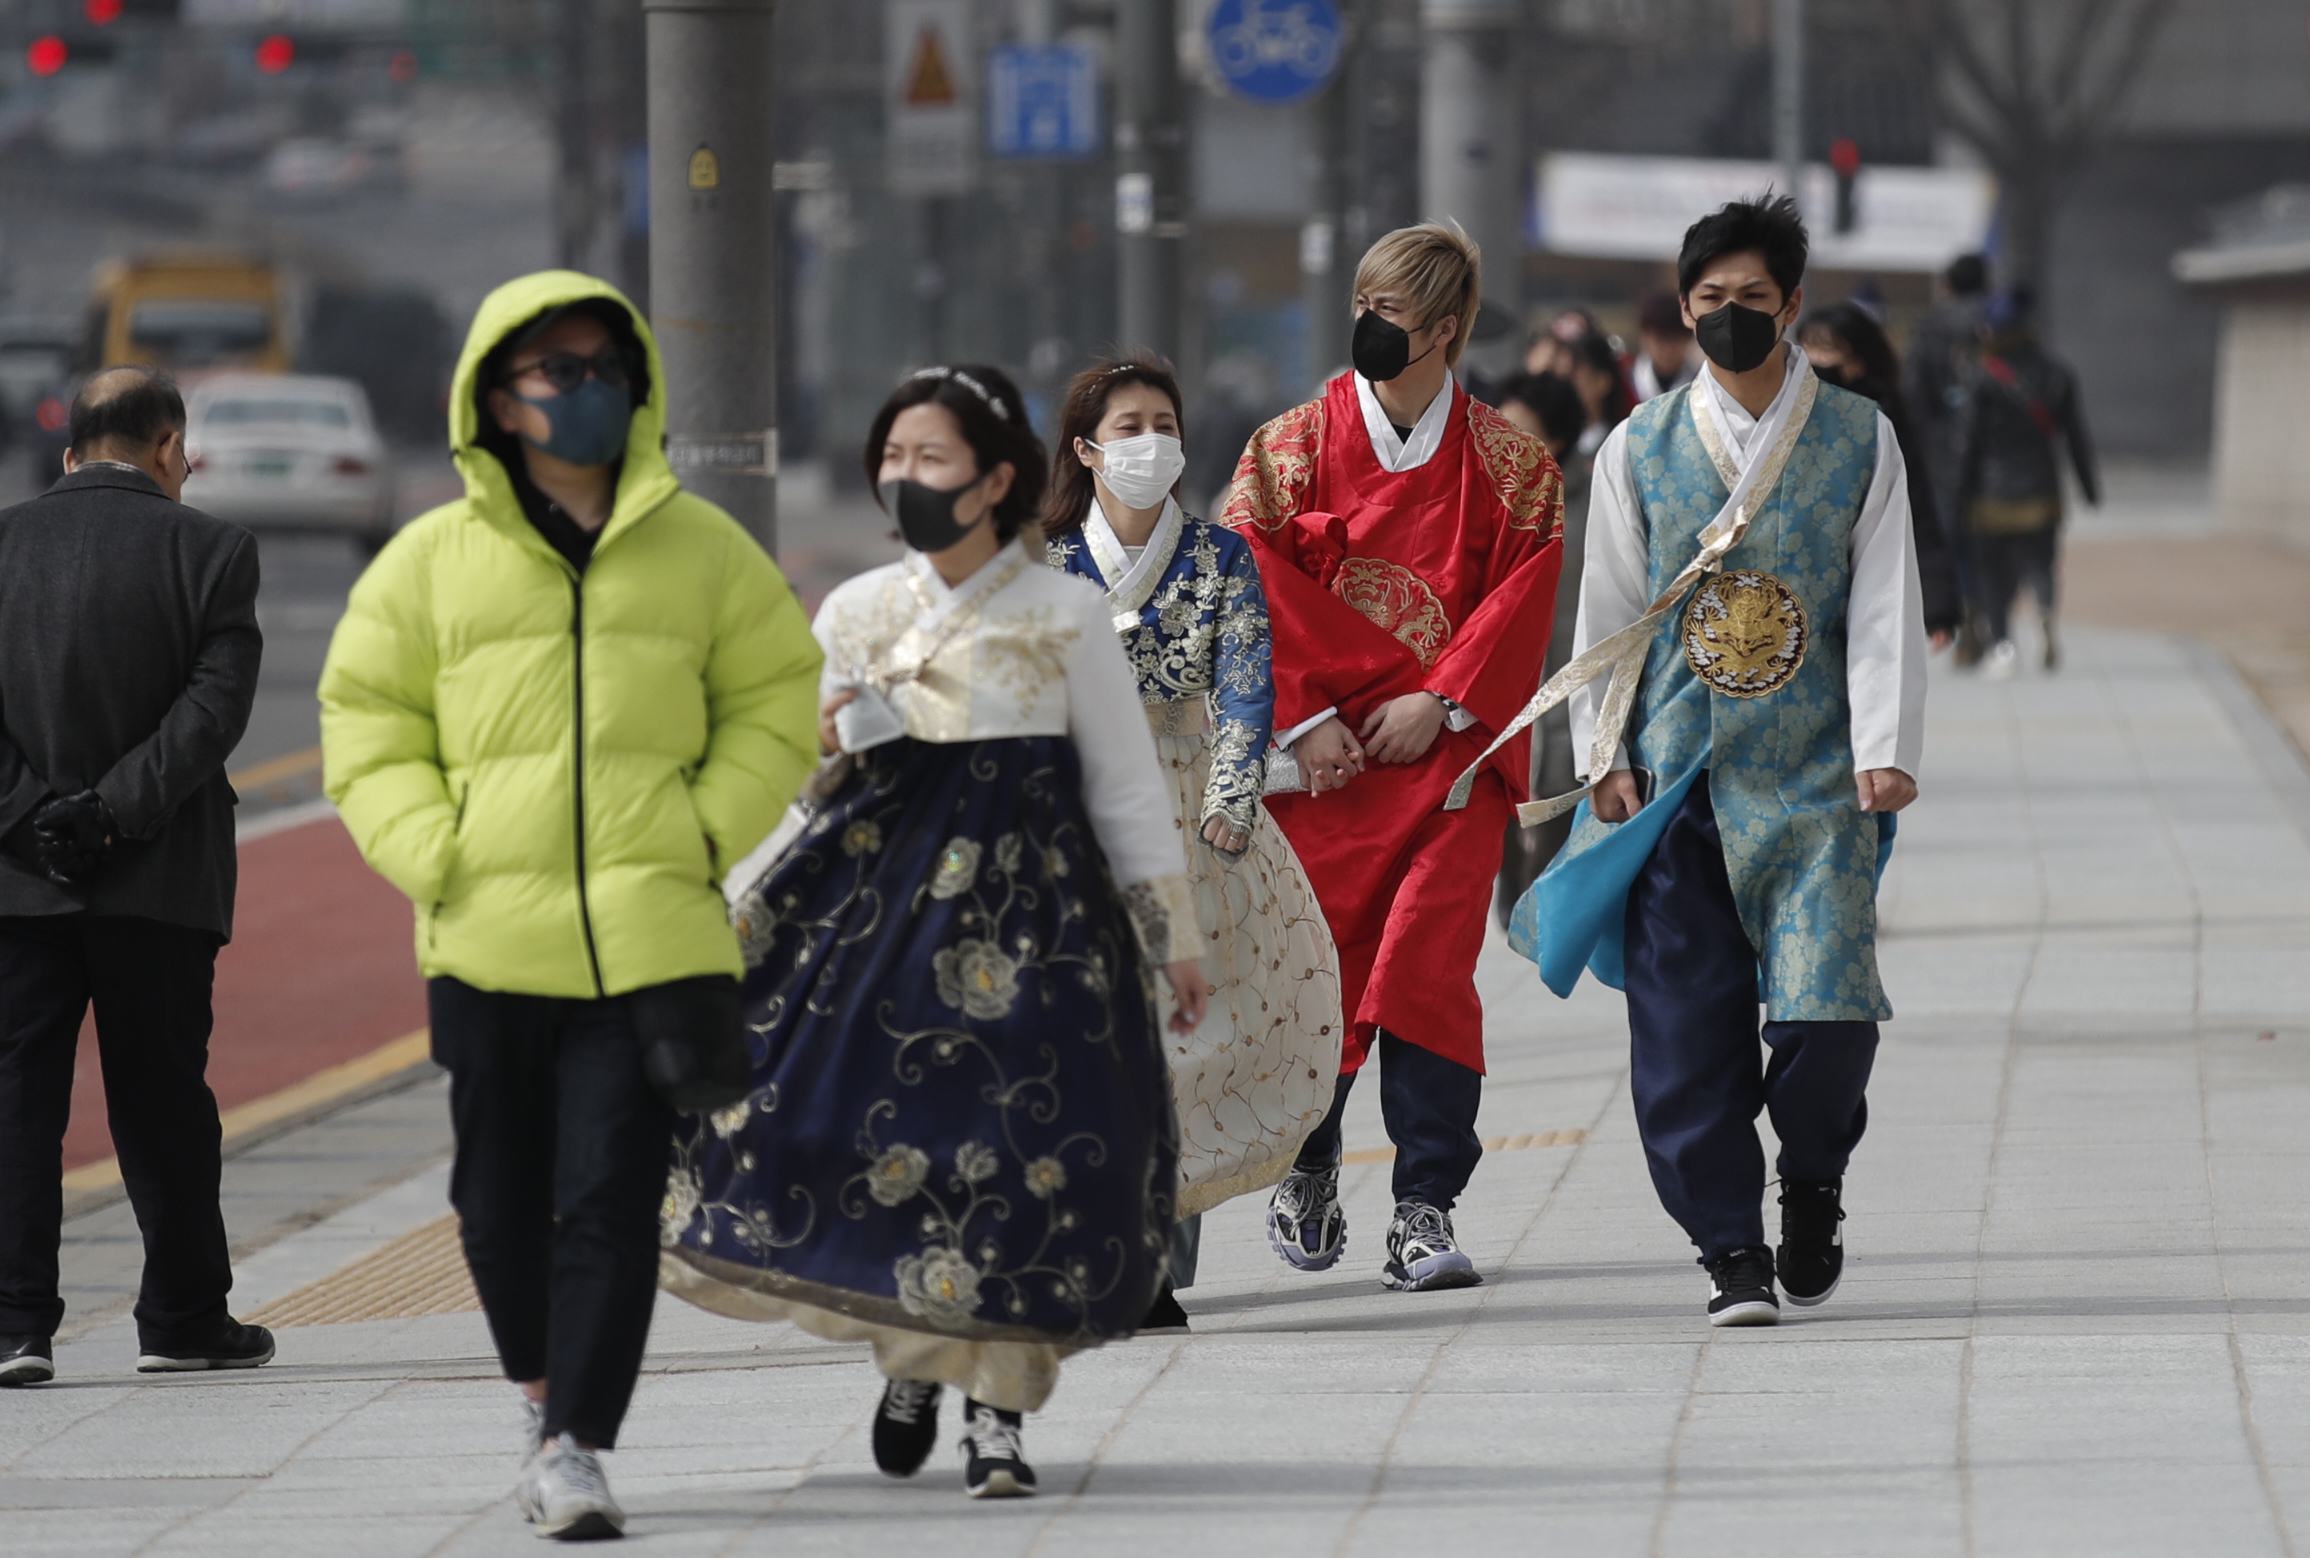 Visitors wearing face masks walk near the Gwanghwamun, the main gate of the 14th-century Gyeongbok Palace, and one of South Korea's well-known landmarks, in Seoul, South Korea, on Feb. 22, 2020.